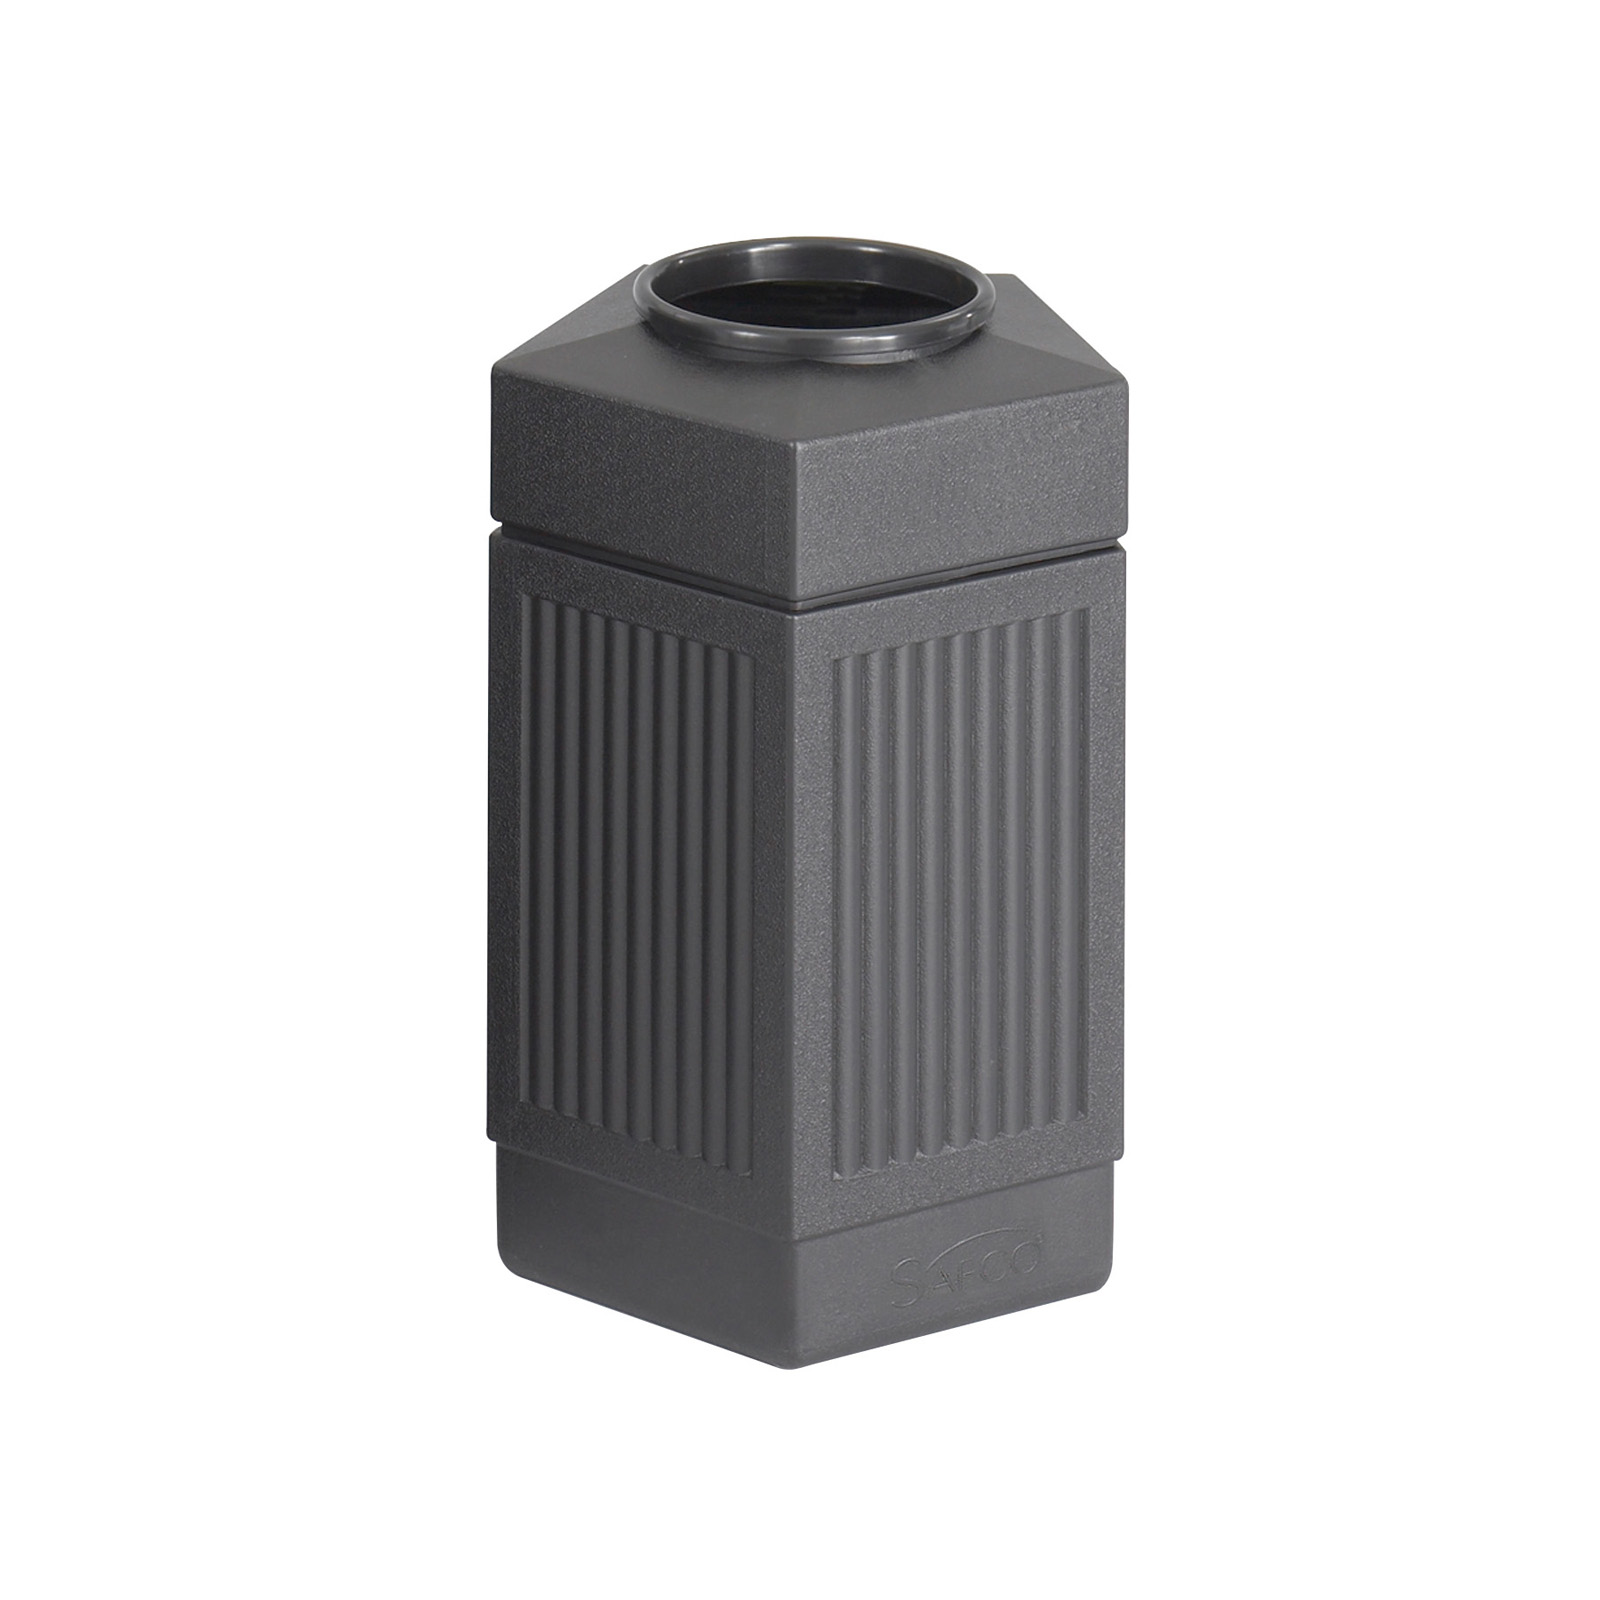 Indoor Garbage Cans Safco 30 Gallon Pentagon Canmeleon Indoor Outdoor